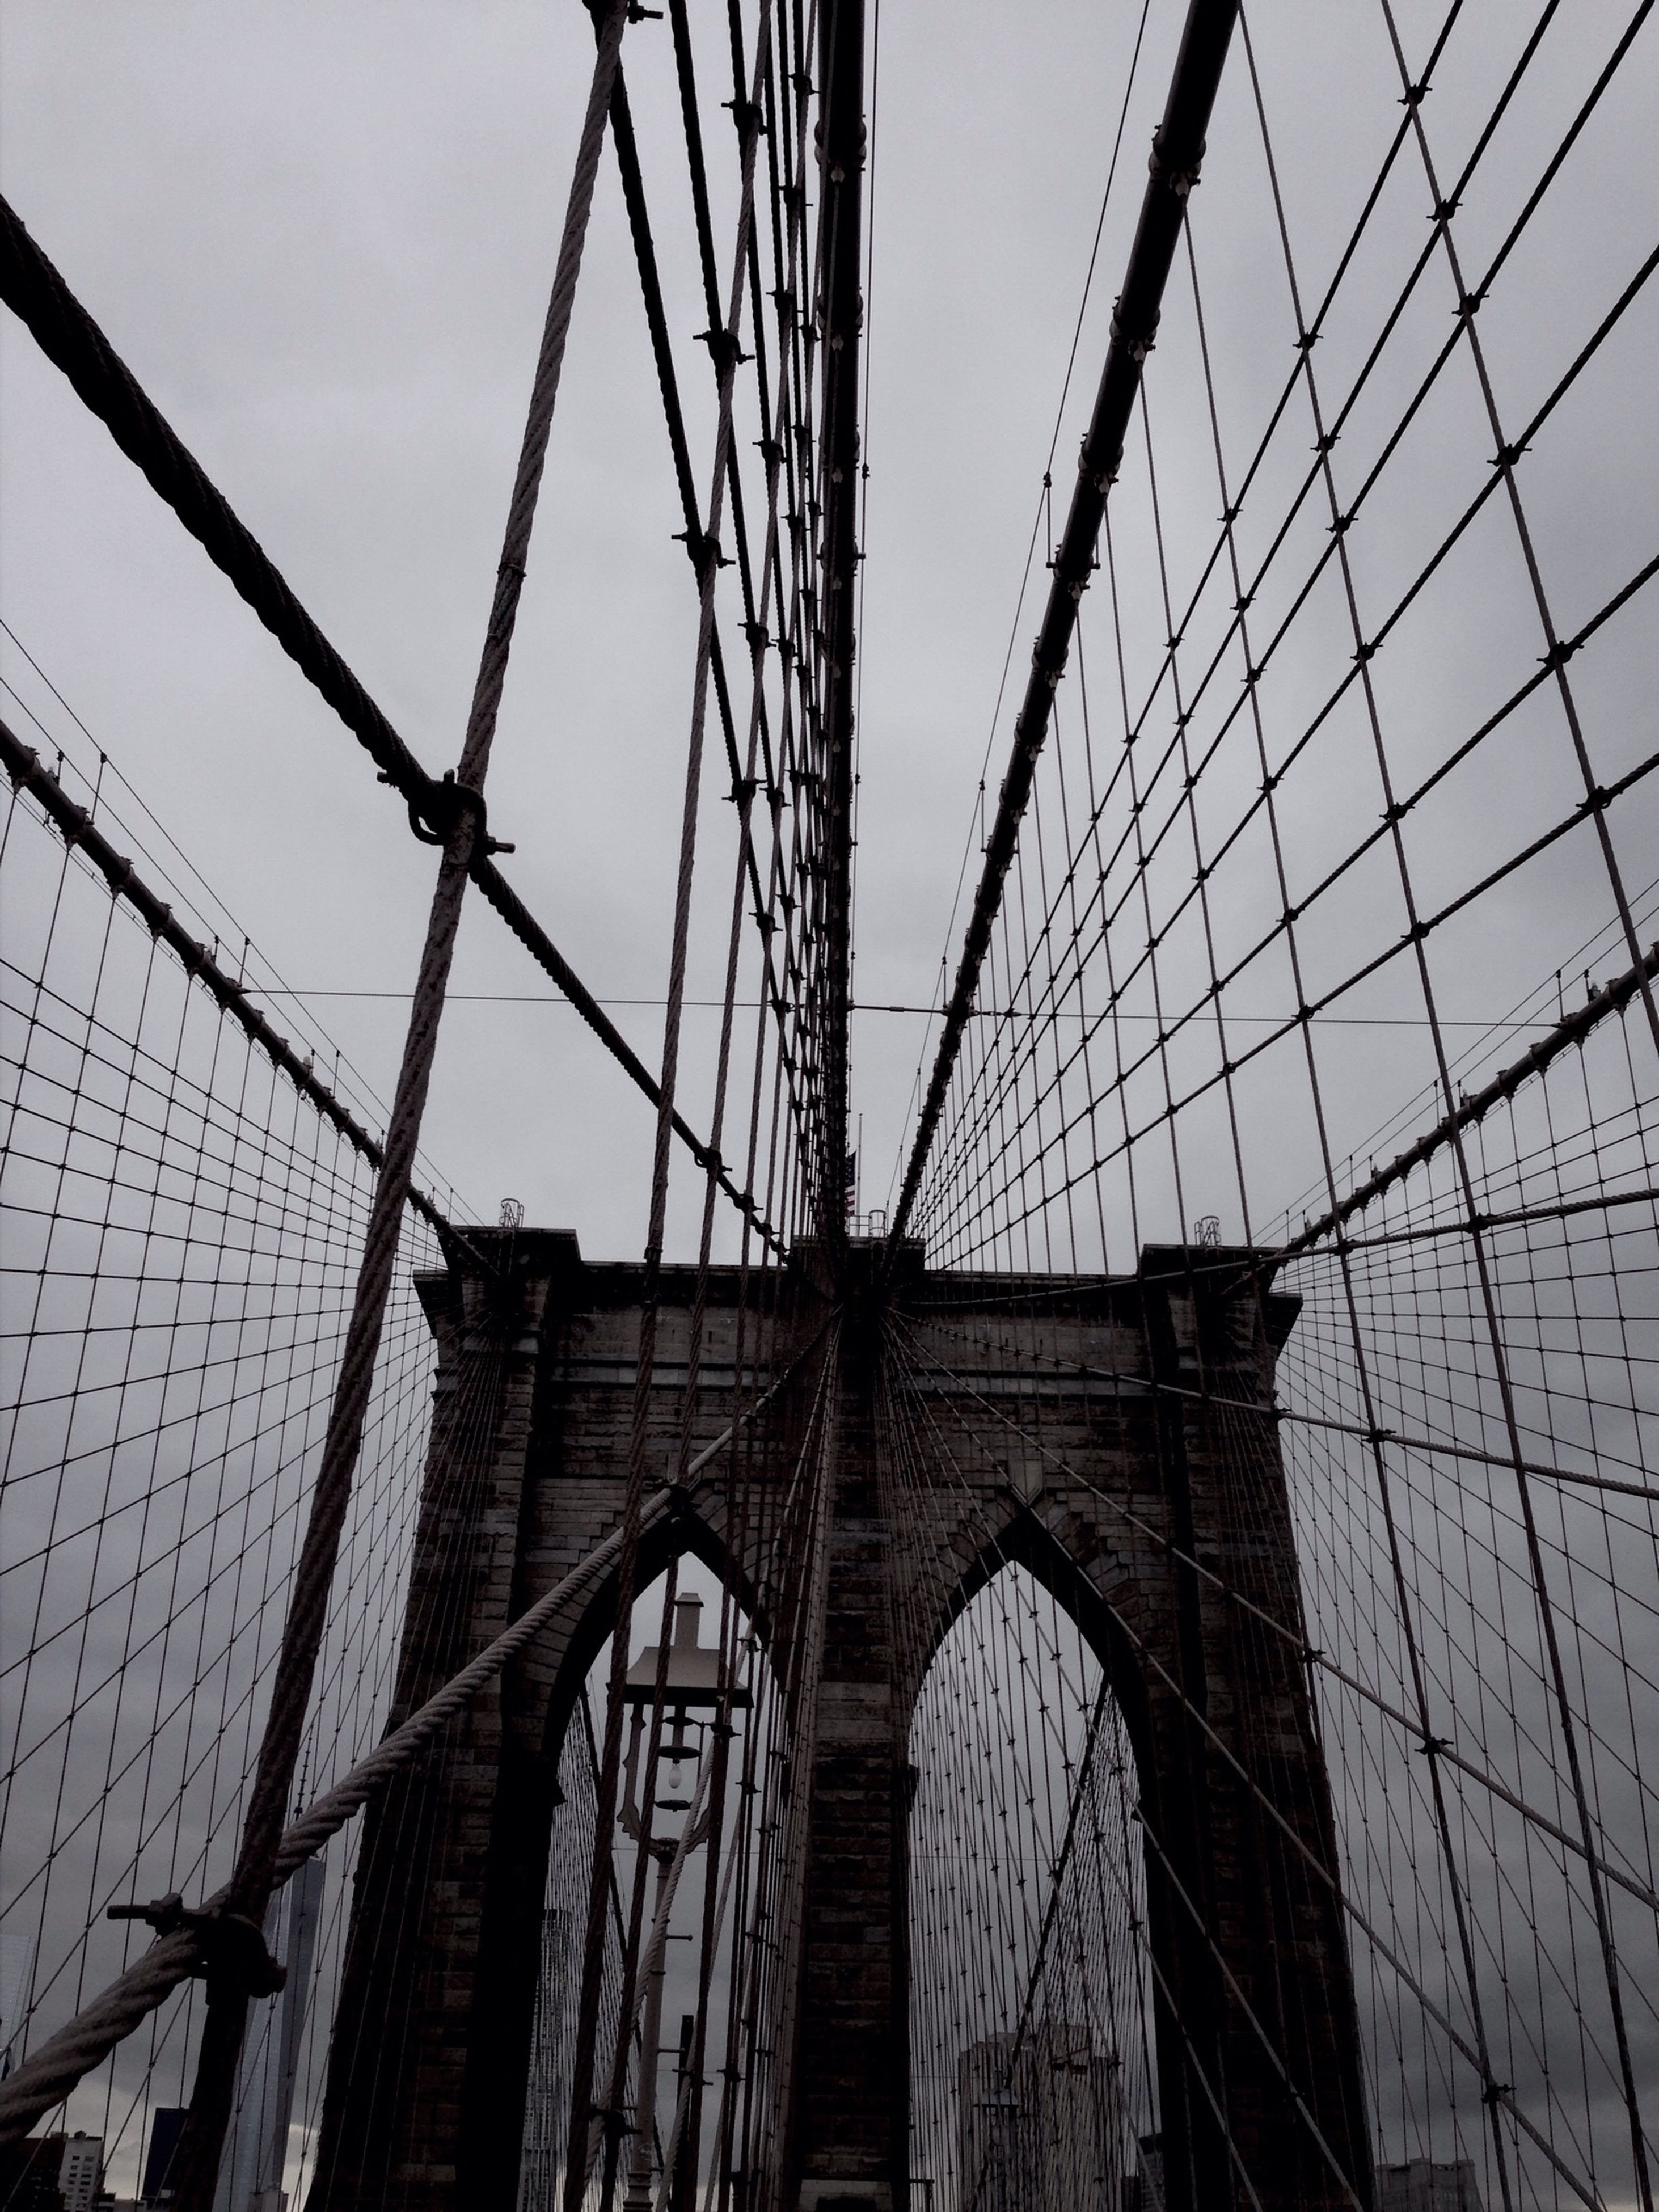 architecture, built structure, low angle view, connection, building exterior, sky, engineering, bridge - man made structure, city, suspension bridge, cable, clear sky, outdoors, day, no people, metal, travel destinations, modern, famous place, tower